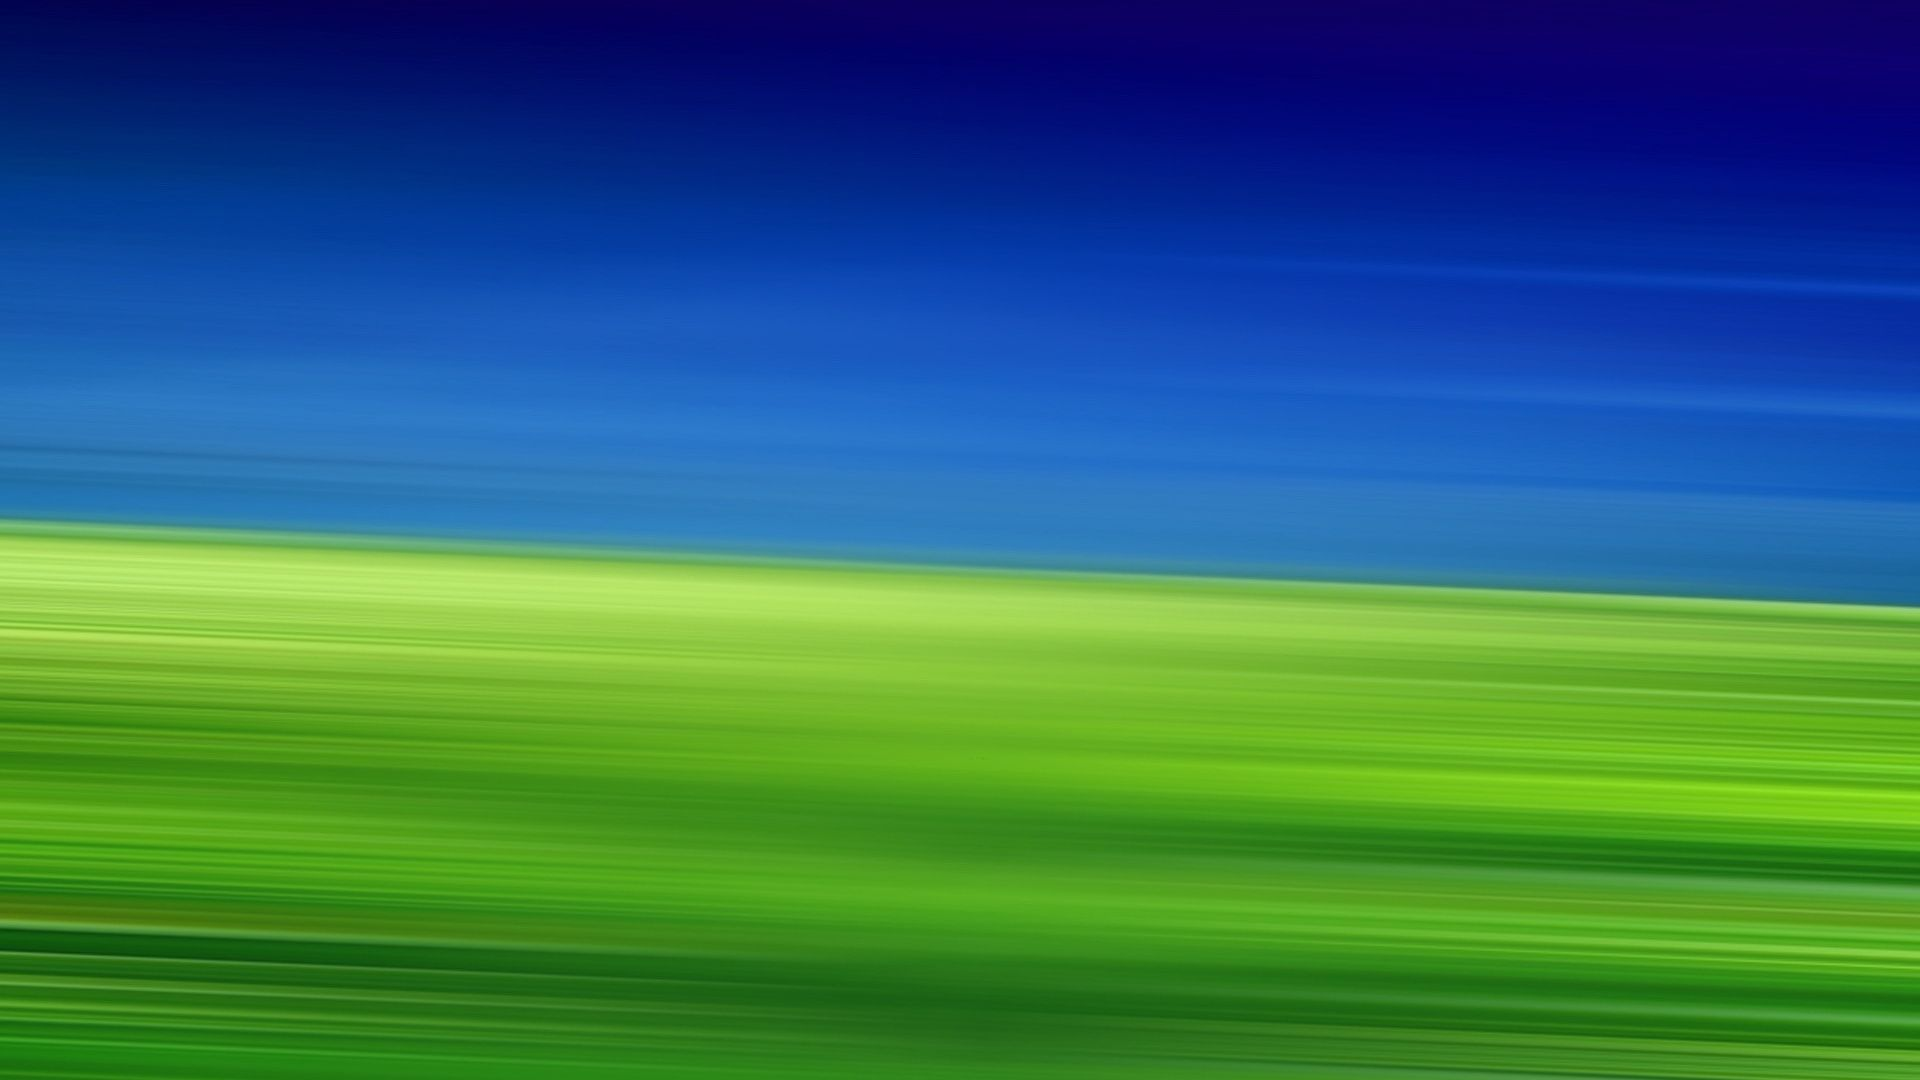 Green And Purple full hd wallpaper for laptop